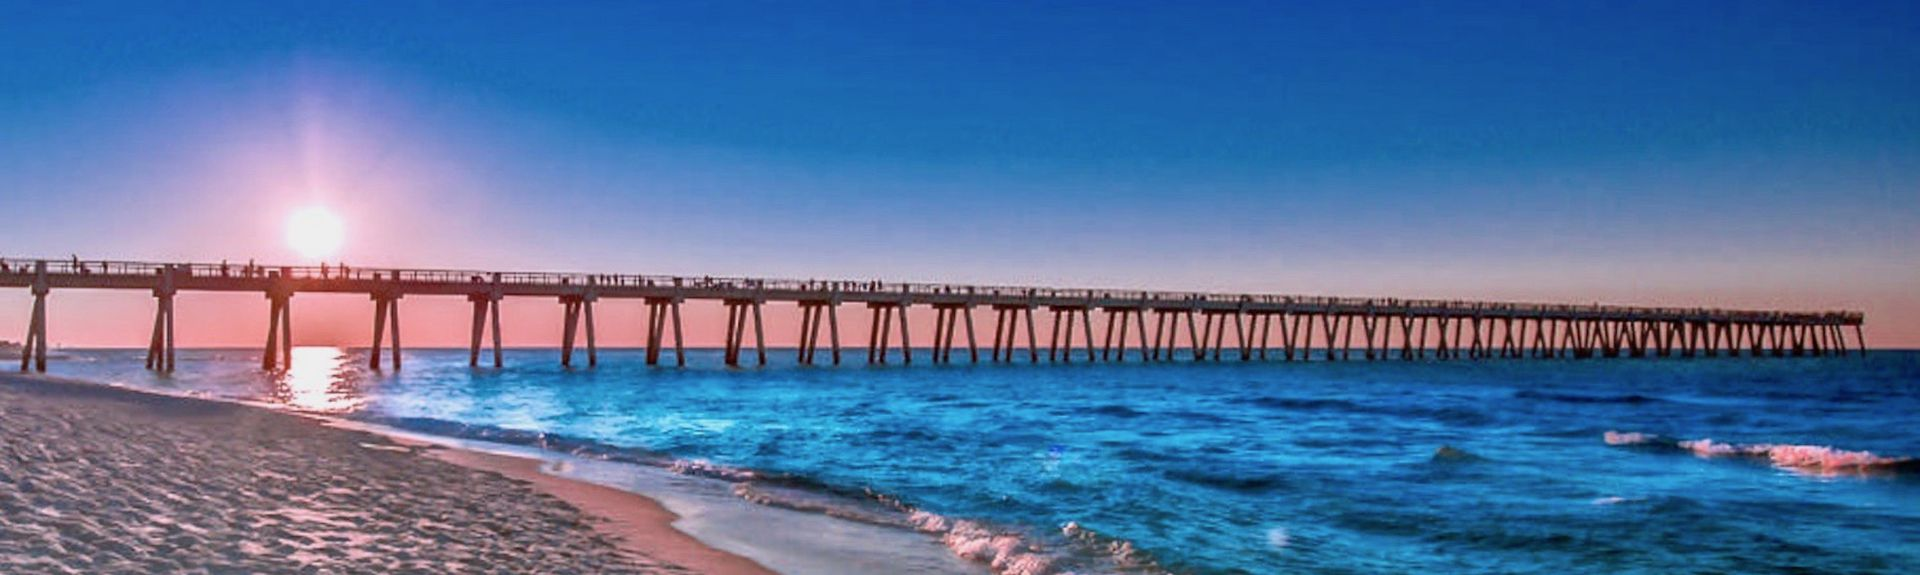 Navarre Beach, Navarre, Florida, USA